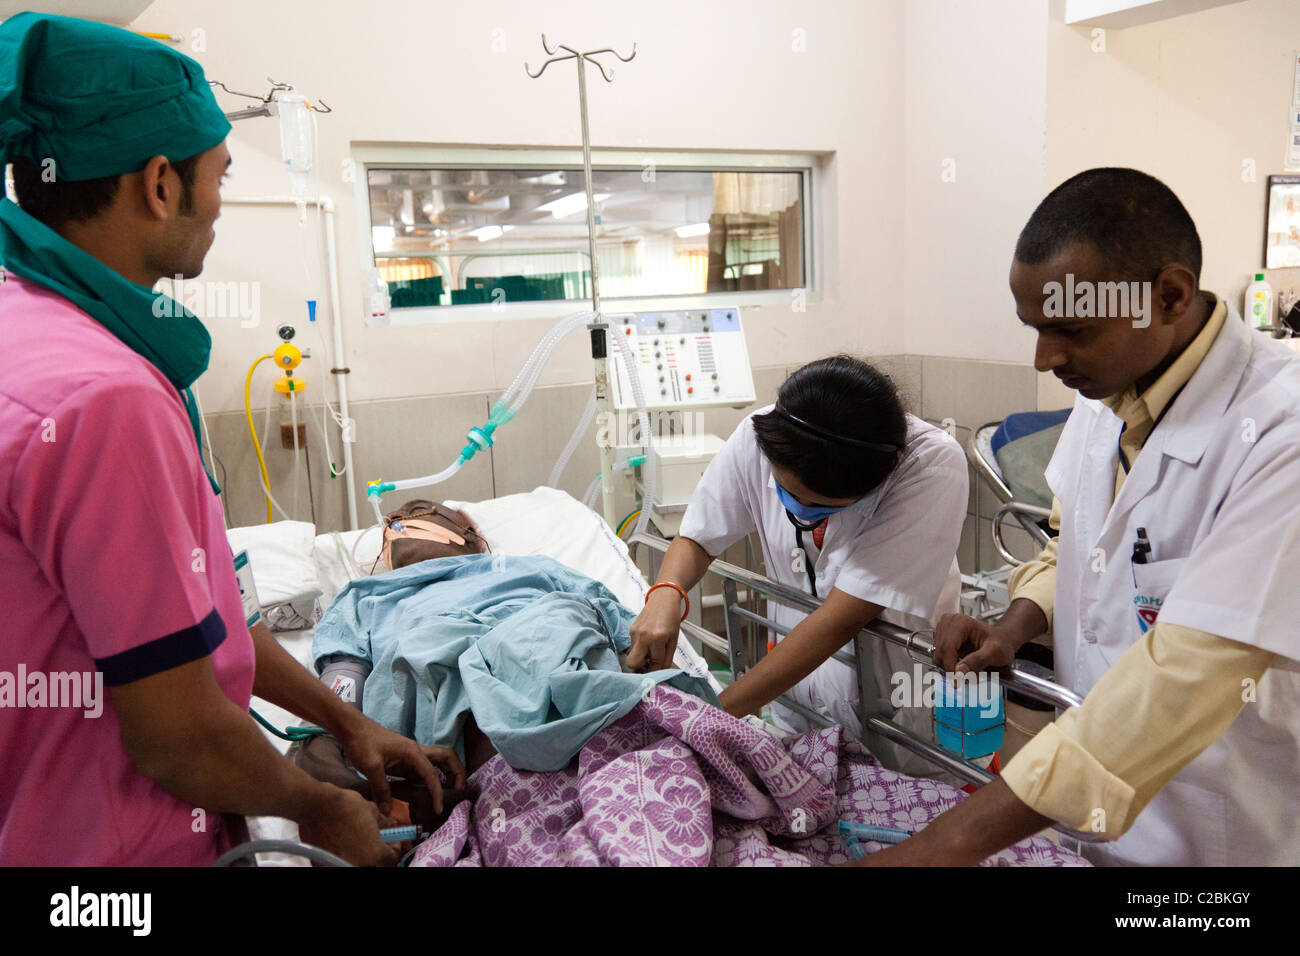 medical staff treat a patient in an intensive care unit